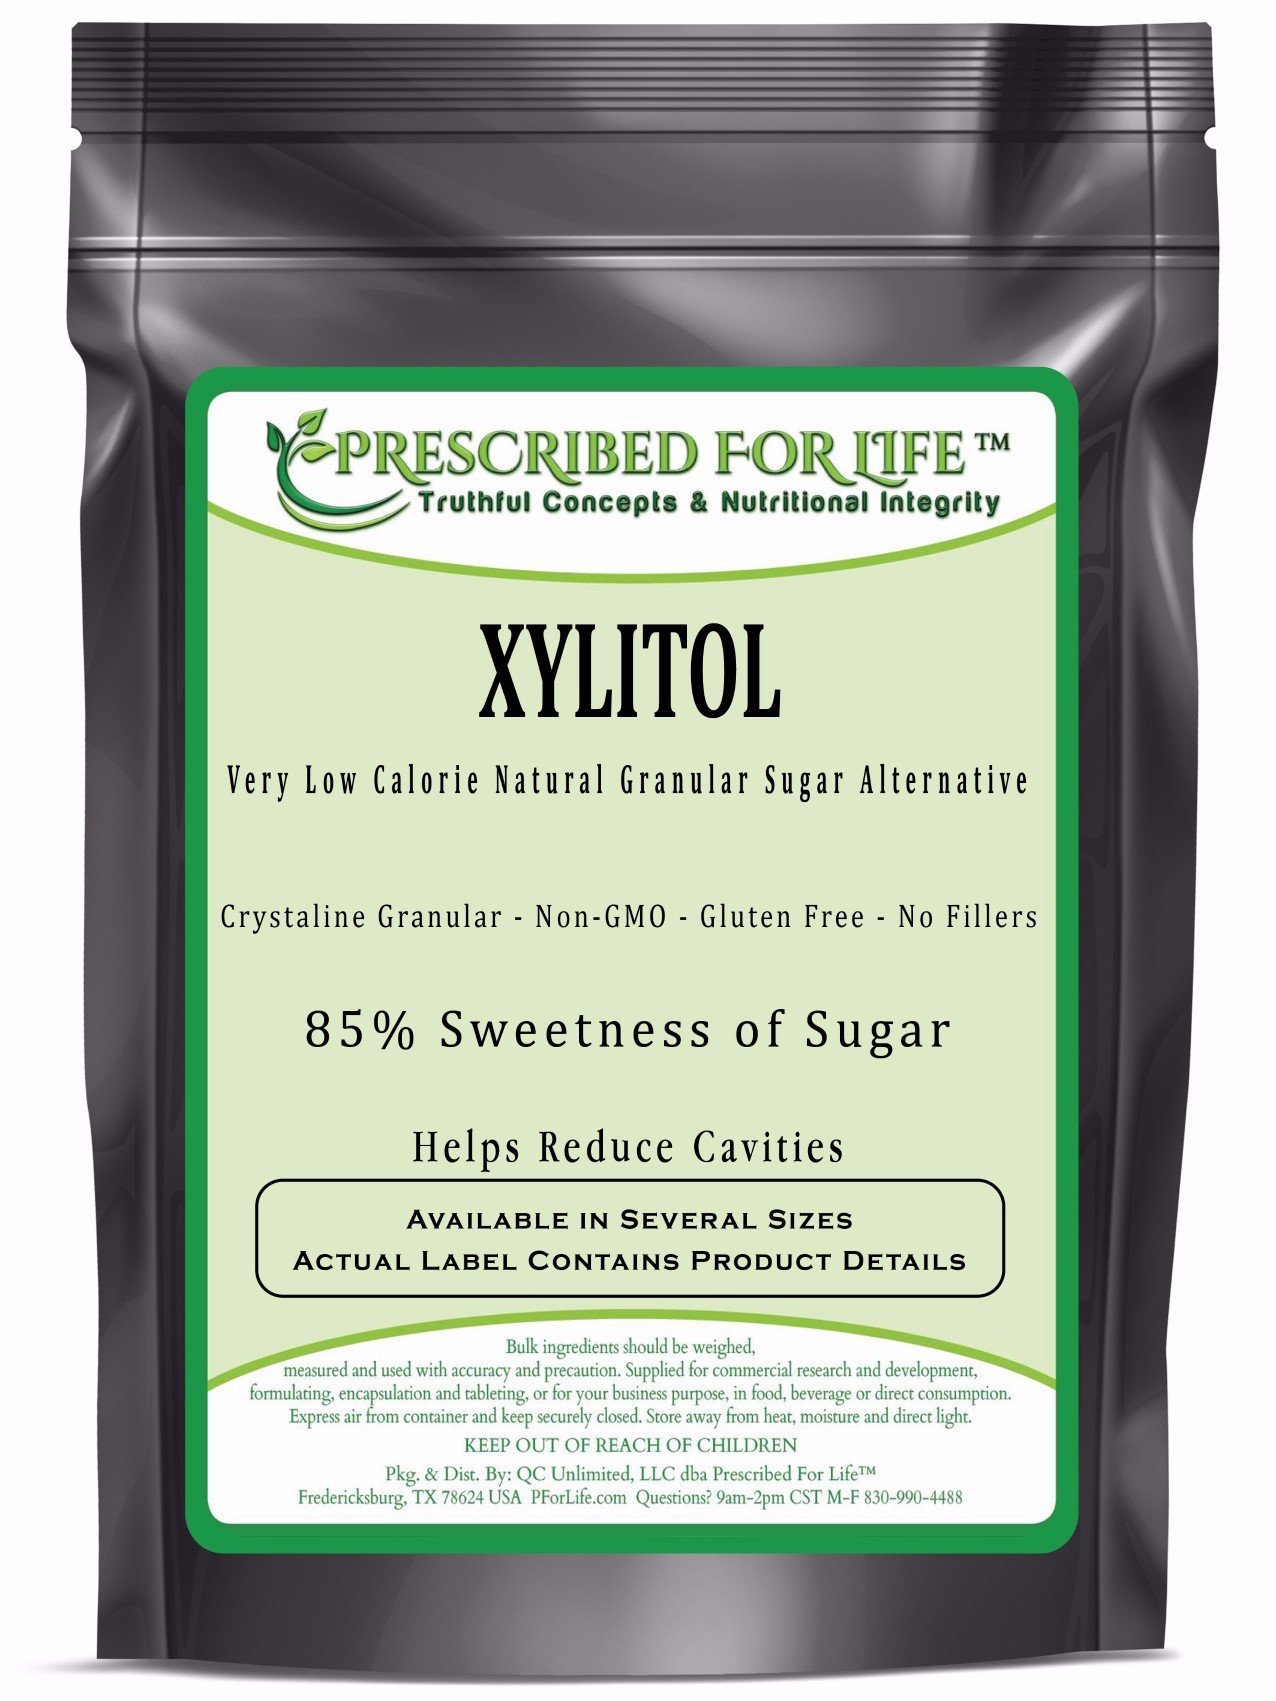 Xylitol - Low Calorie Natural Granular Sugar Alternative - 85% Sweetness of Sugar, 25 kg by Prescribed For Life